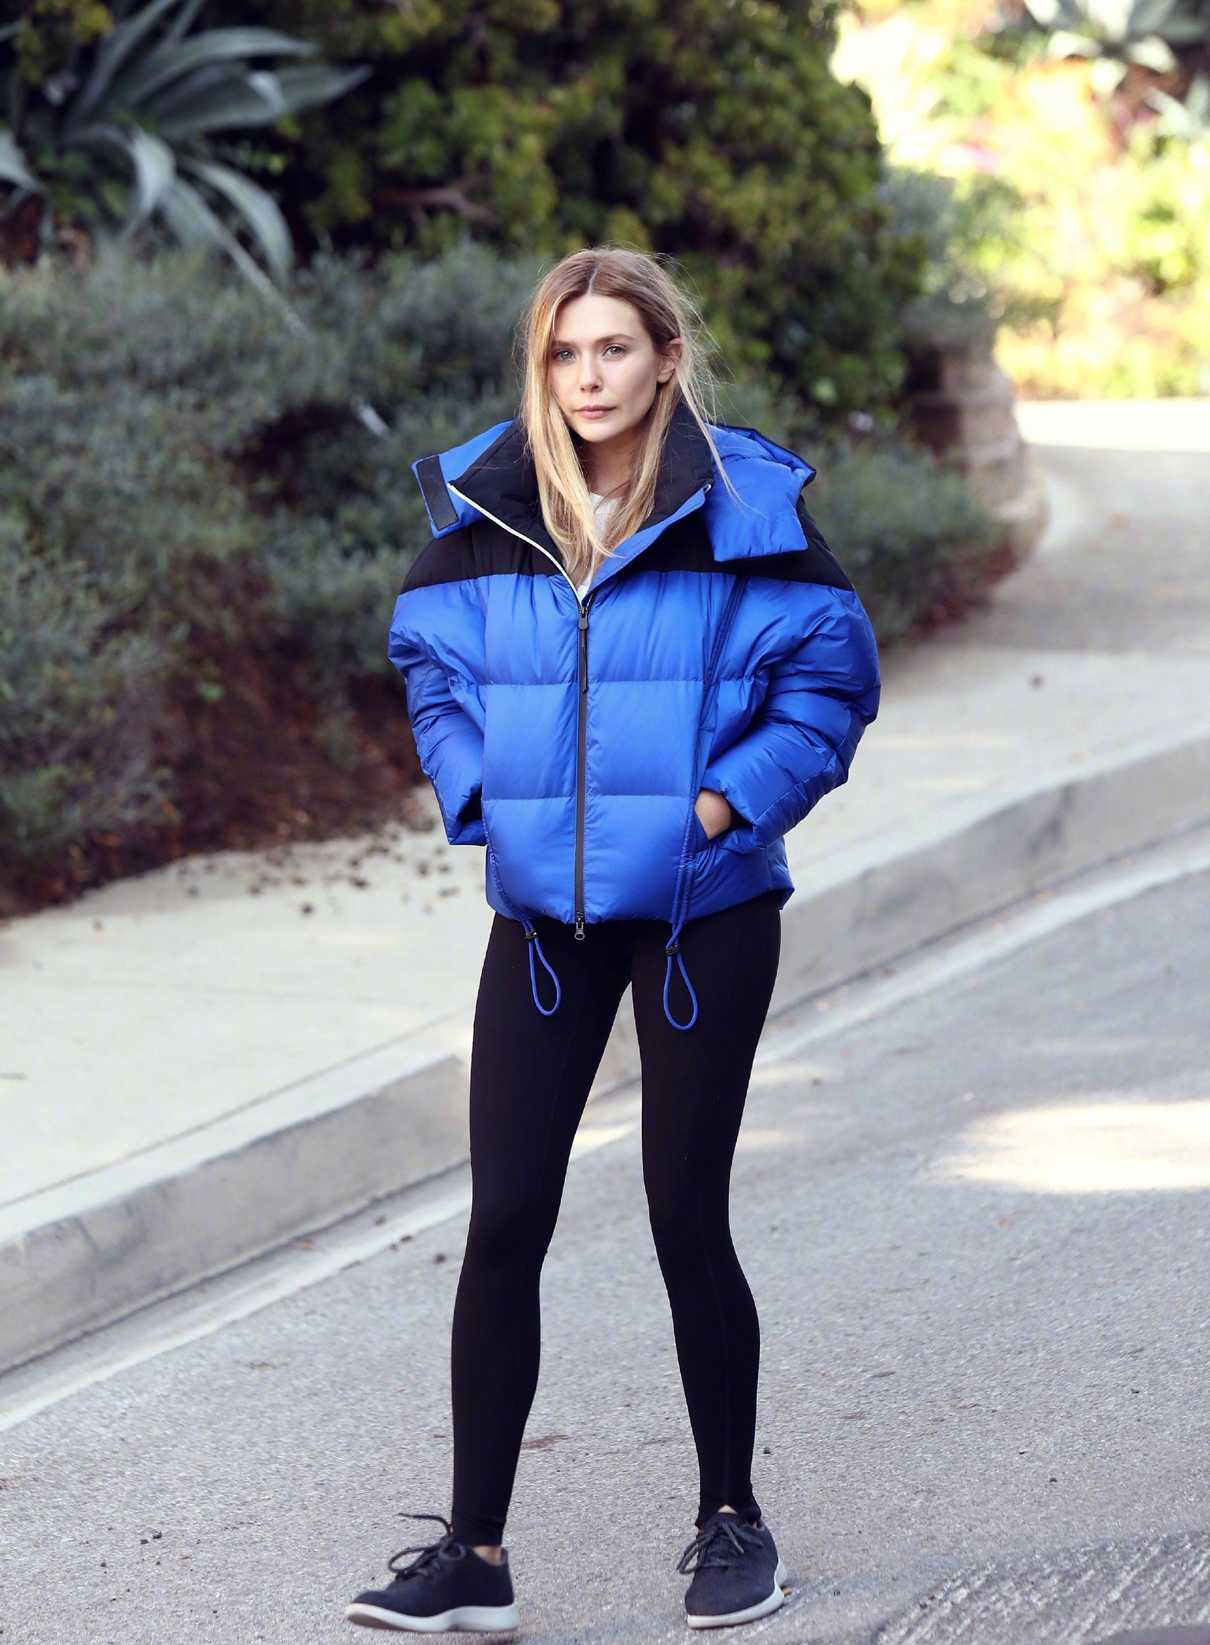 Elizabeth Olsen in a Blue Jacket